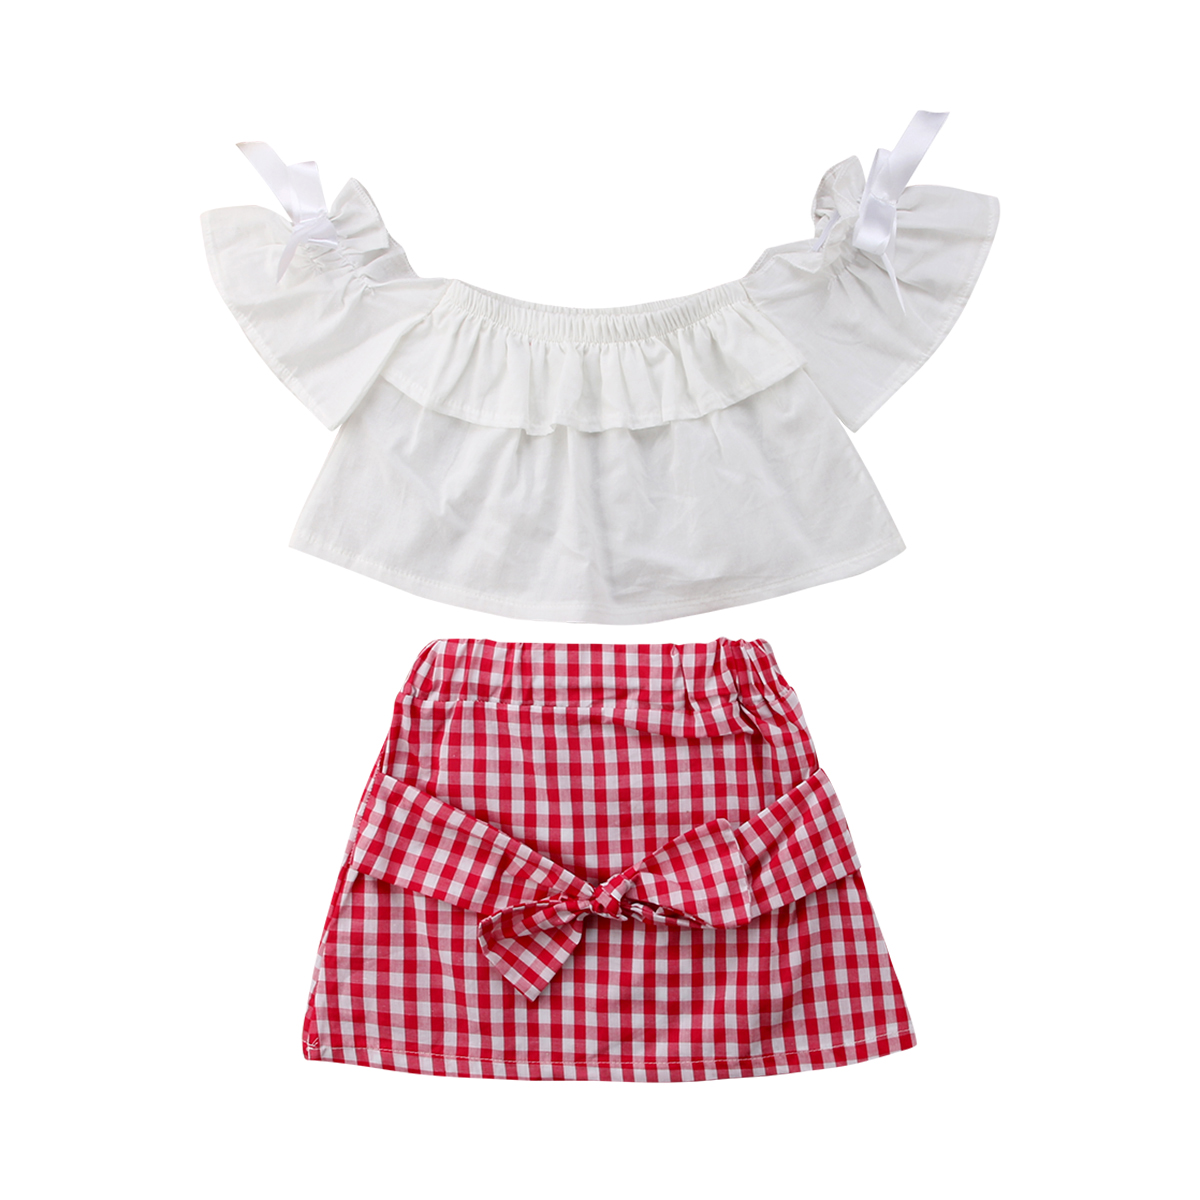 Kids Plaid Set Baby Girl Off Shoulder Dress Top Lattice Skirt Outfits Clothes 2PCS